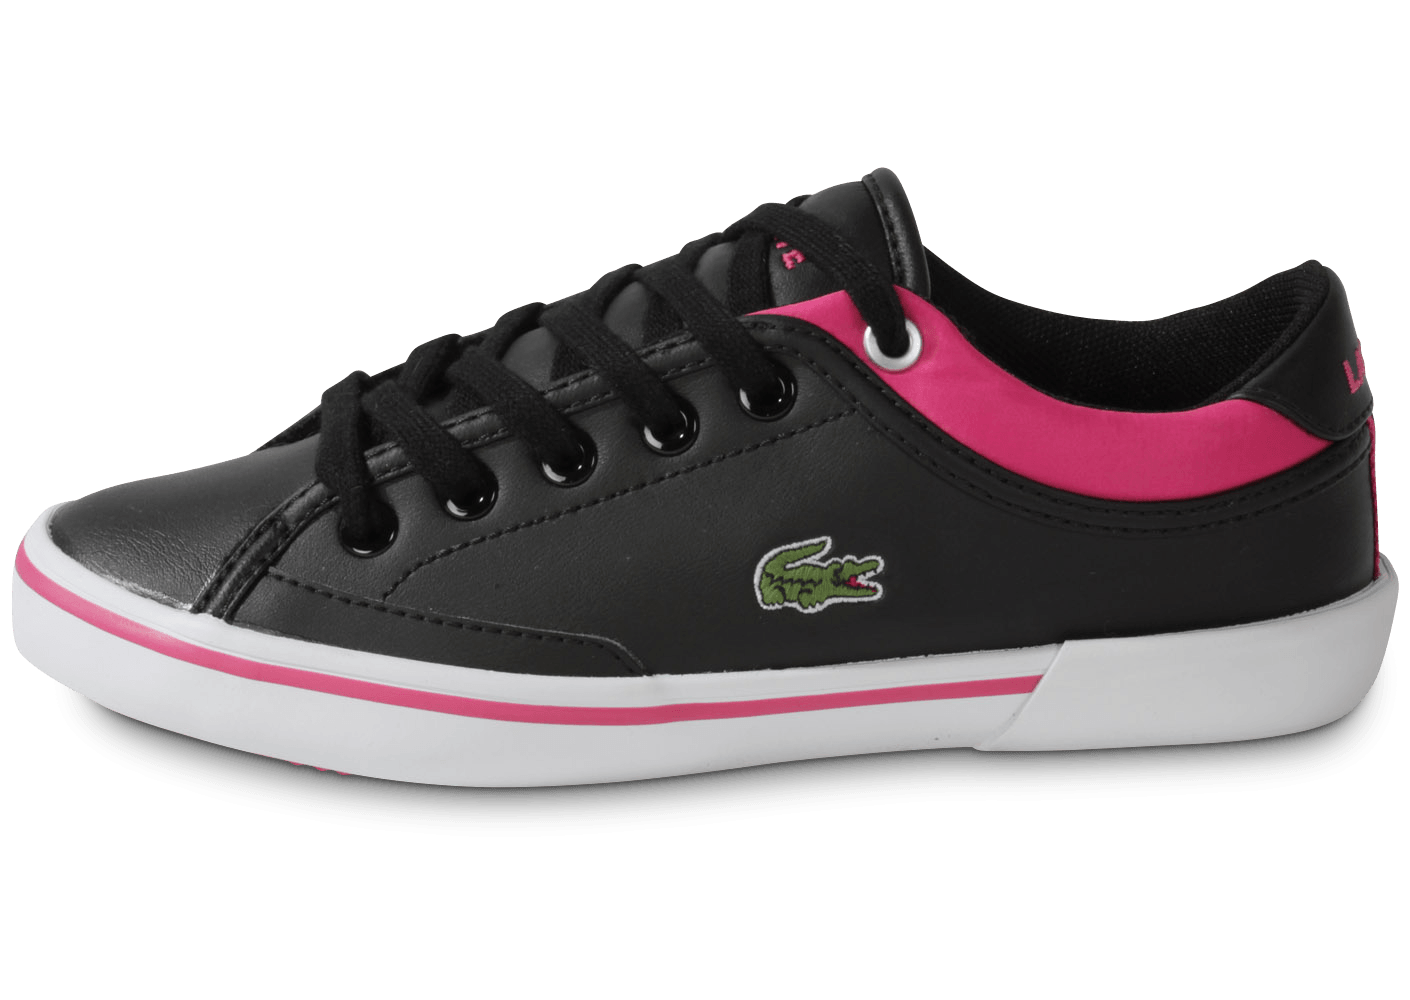 lacoste angha enfant noir rose chaussures chaussures chausport. Black Bedroom Furniture Sets. Home Design Ideas